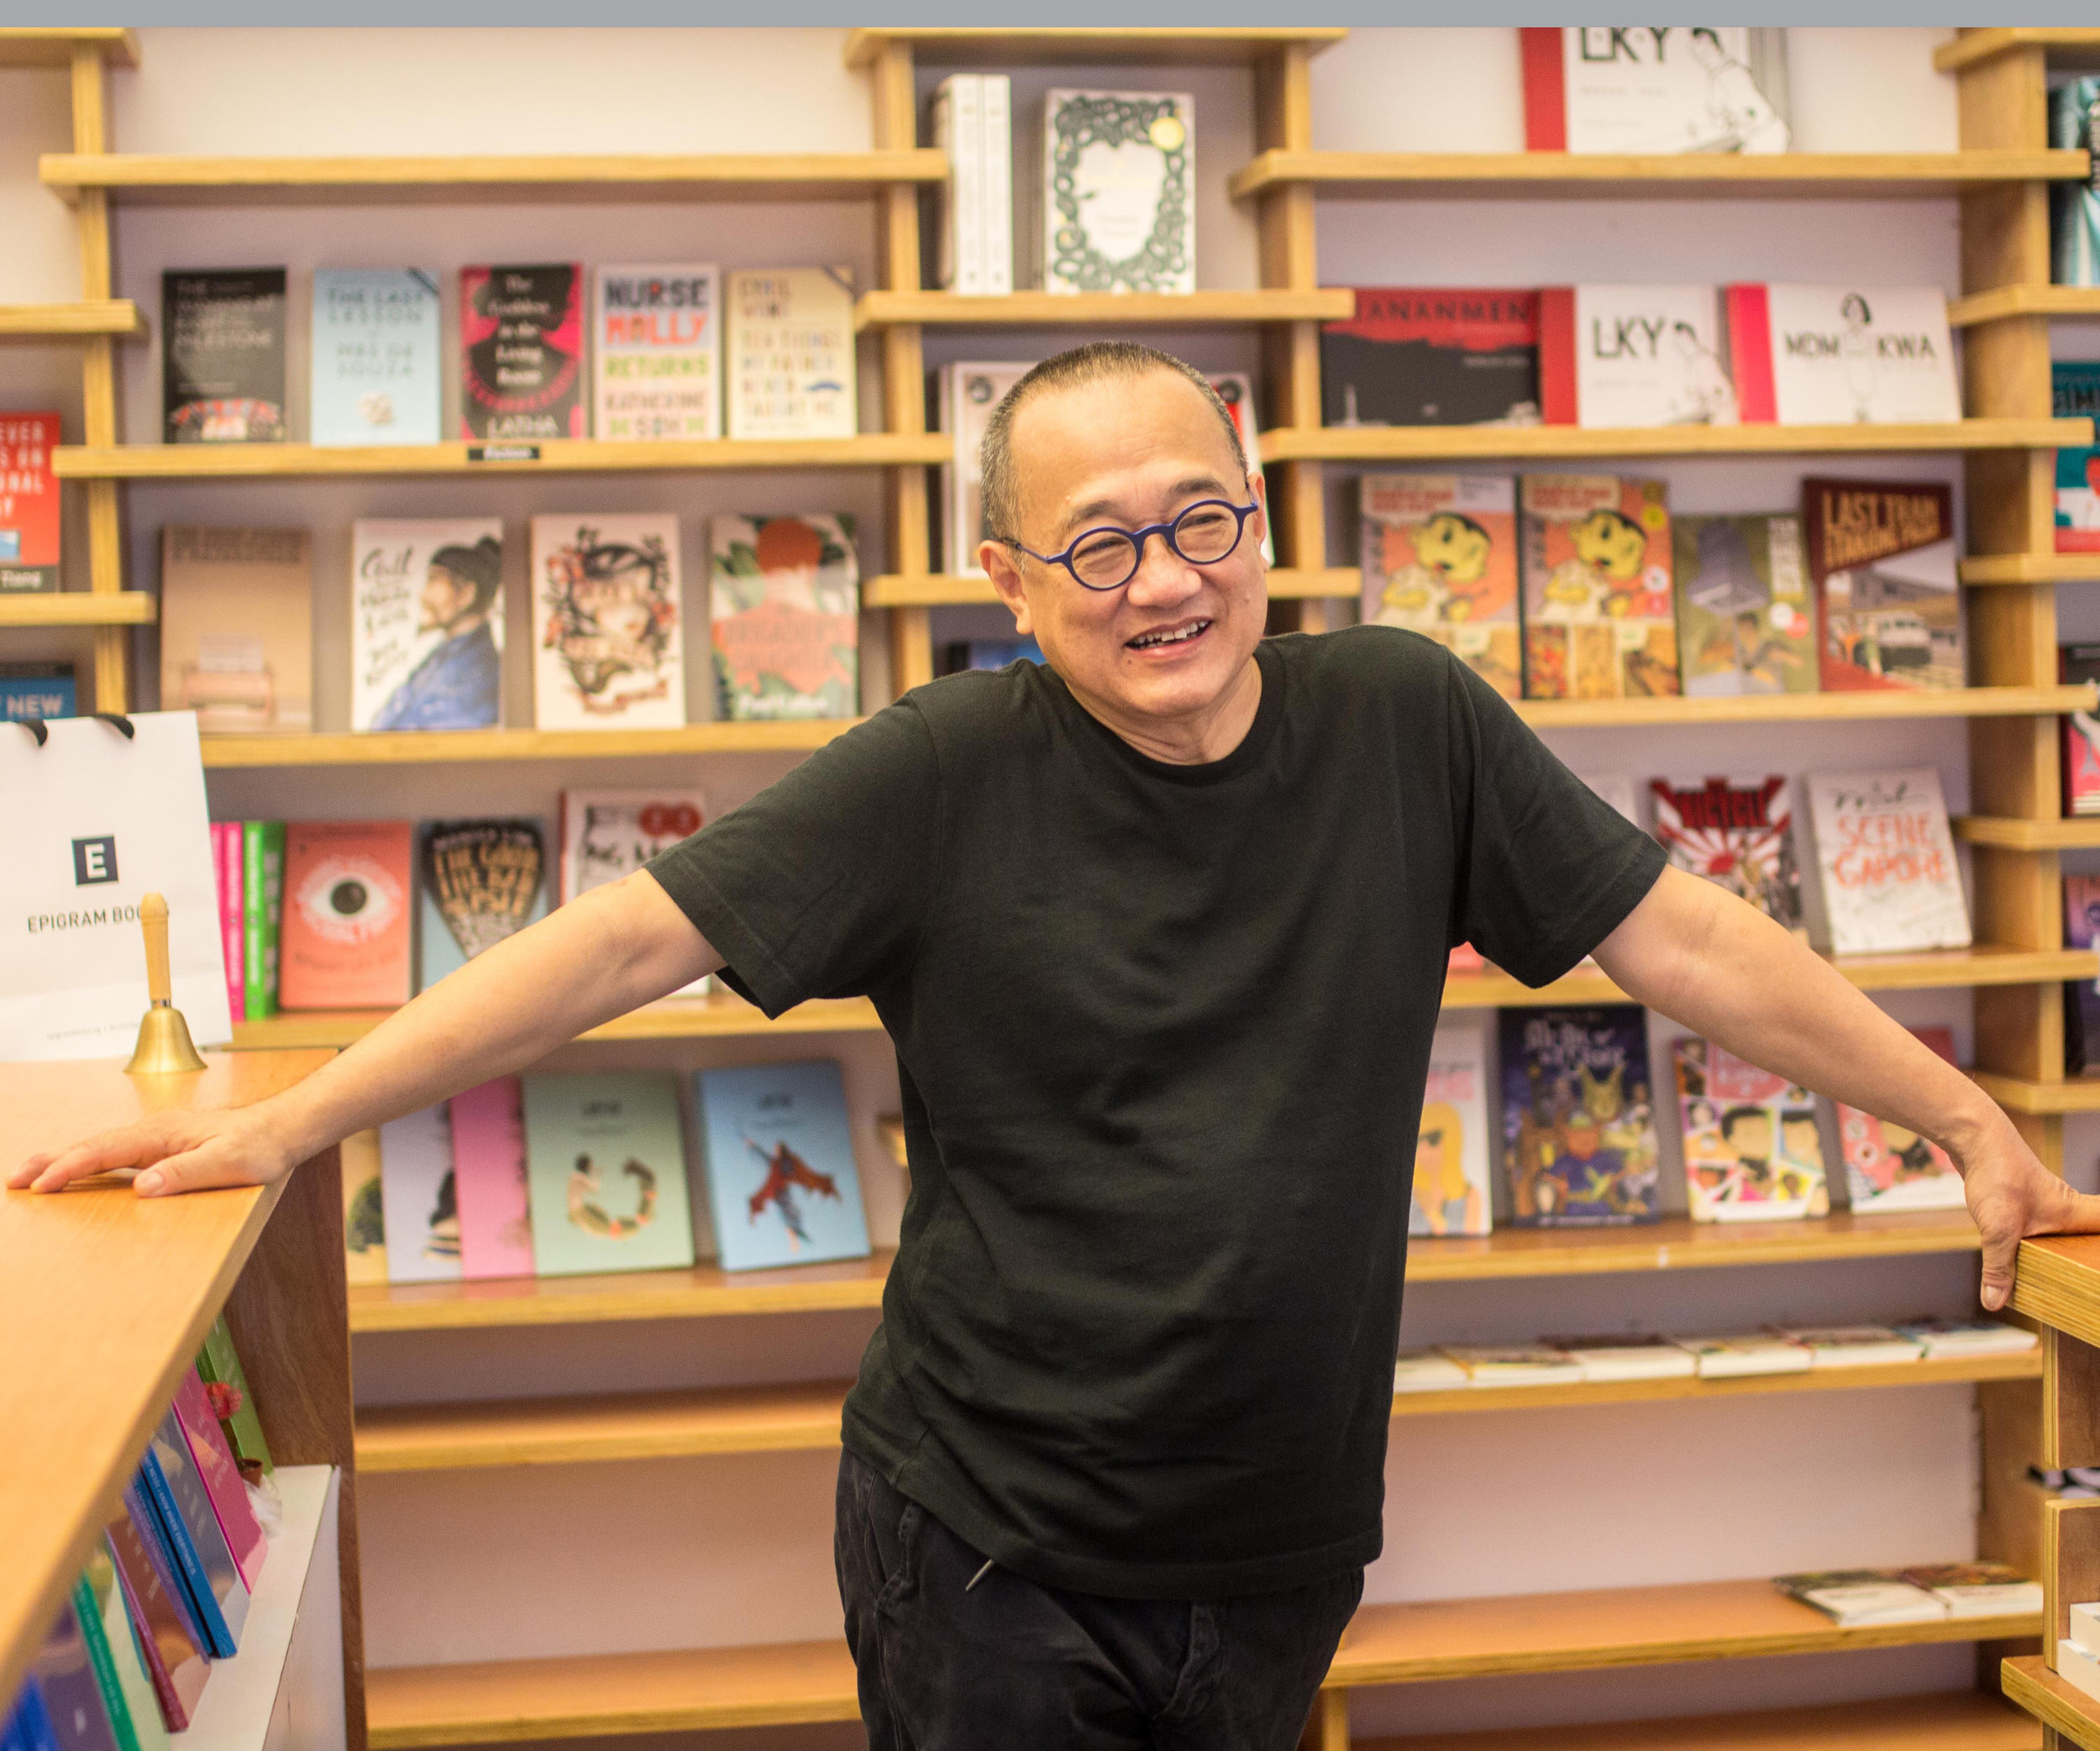 """On Singapore Literature - """"Increasingly Singaporeans are looking to the literary arts as a form of artistic expressions and more of them are looking for a publisher that can help them realise their vision. I started Epigram Books when I sensed this nascent desire. Since then, it's been my pleasure and honour to have published so many first -time authors and to see a flourishing of Singapore literature. We do not yet have an ecosystem that can support full-time authors. It is my hope that that will happen and Epigram Books is committed to the cause."""""""